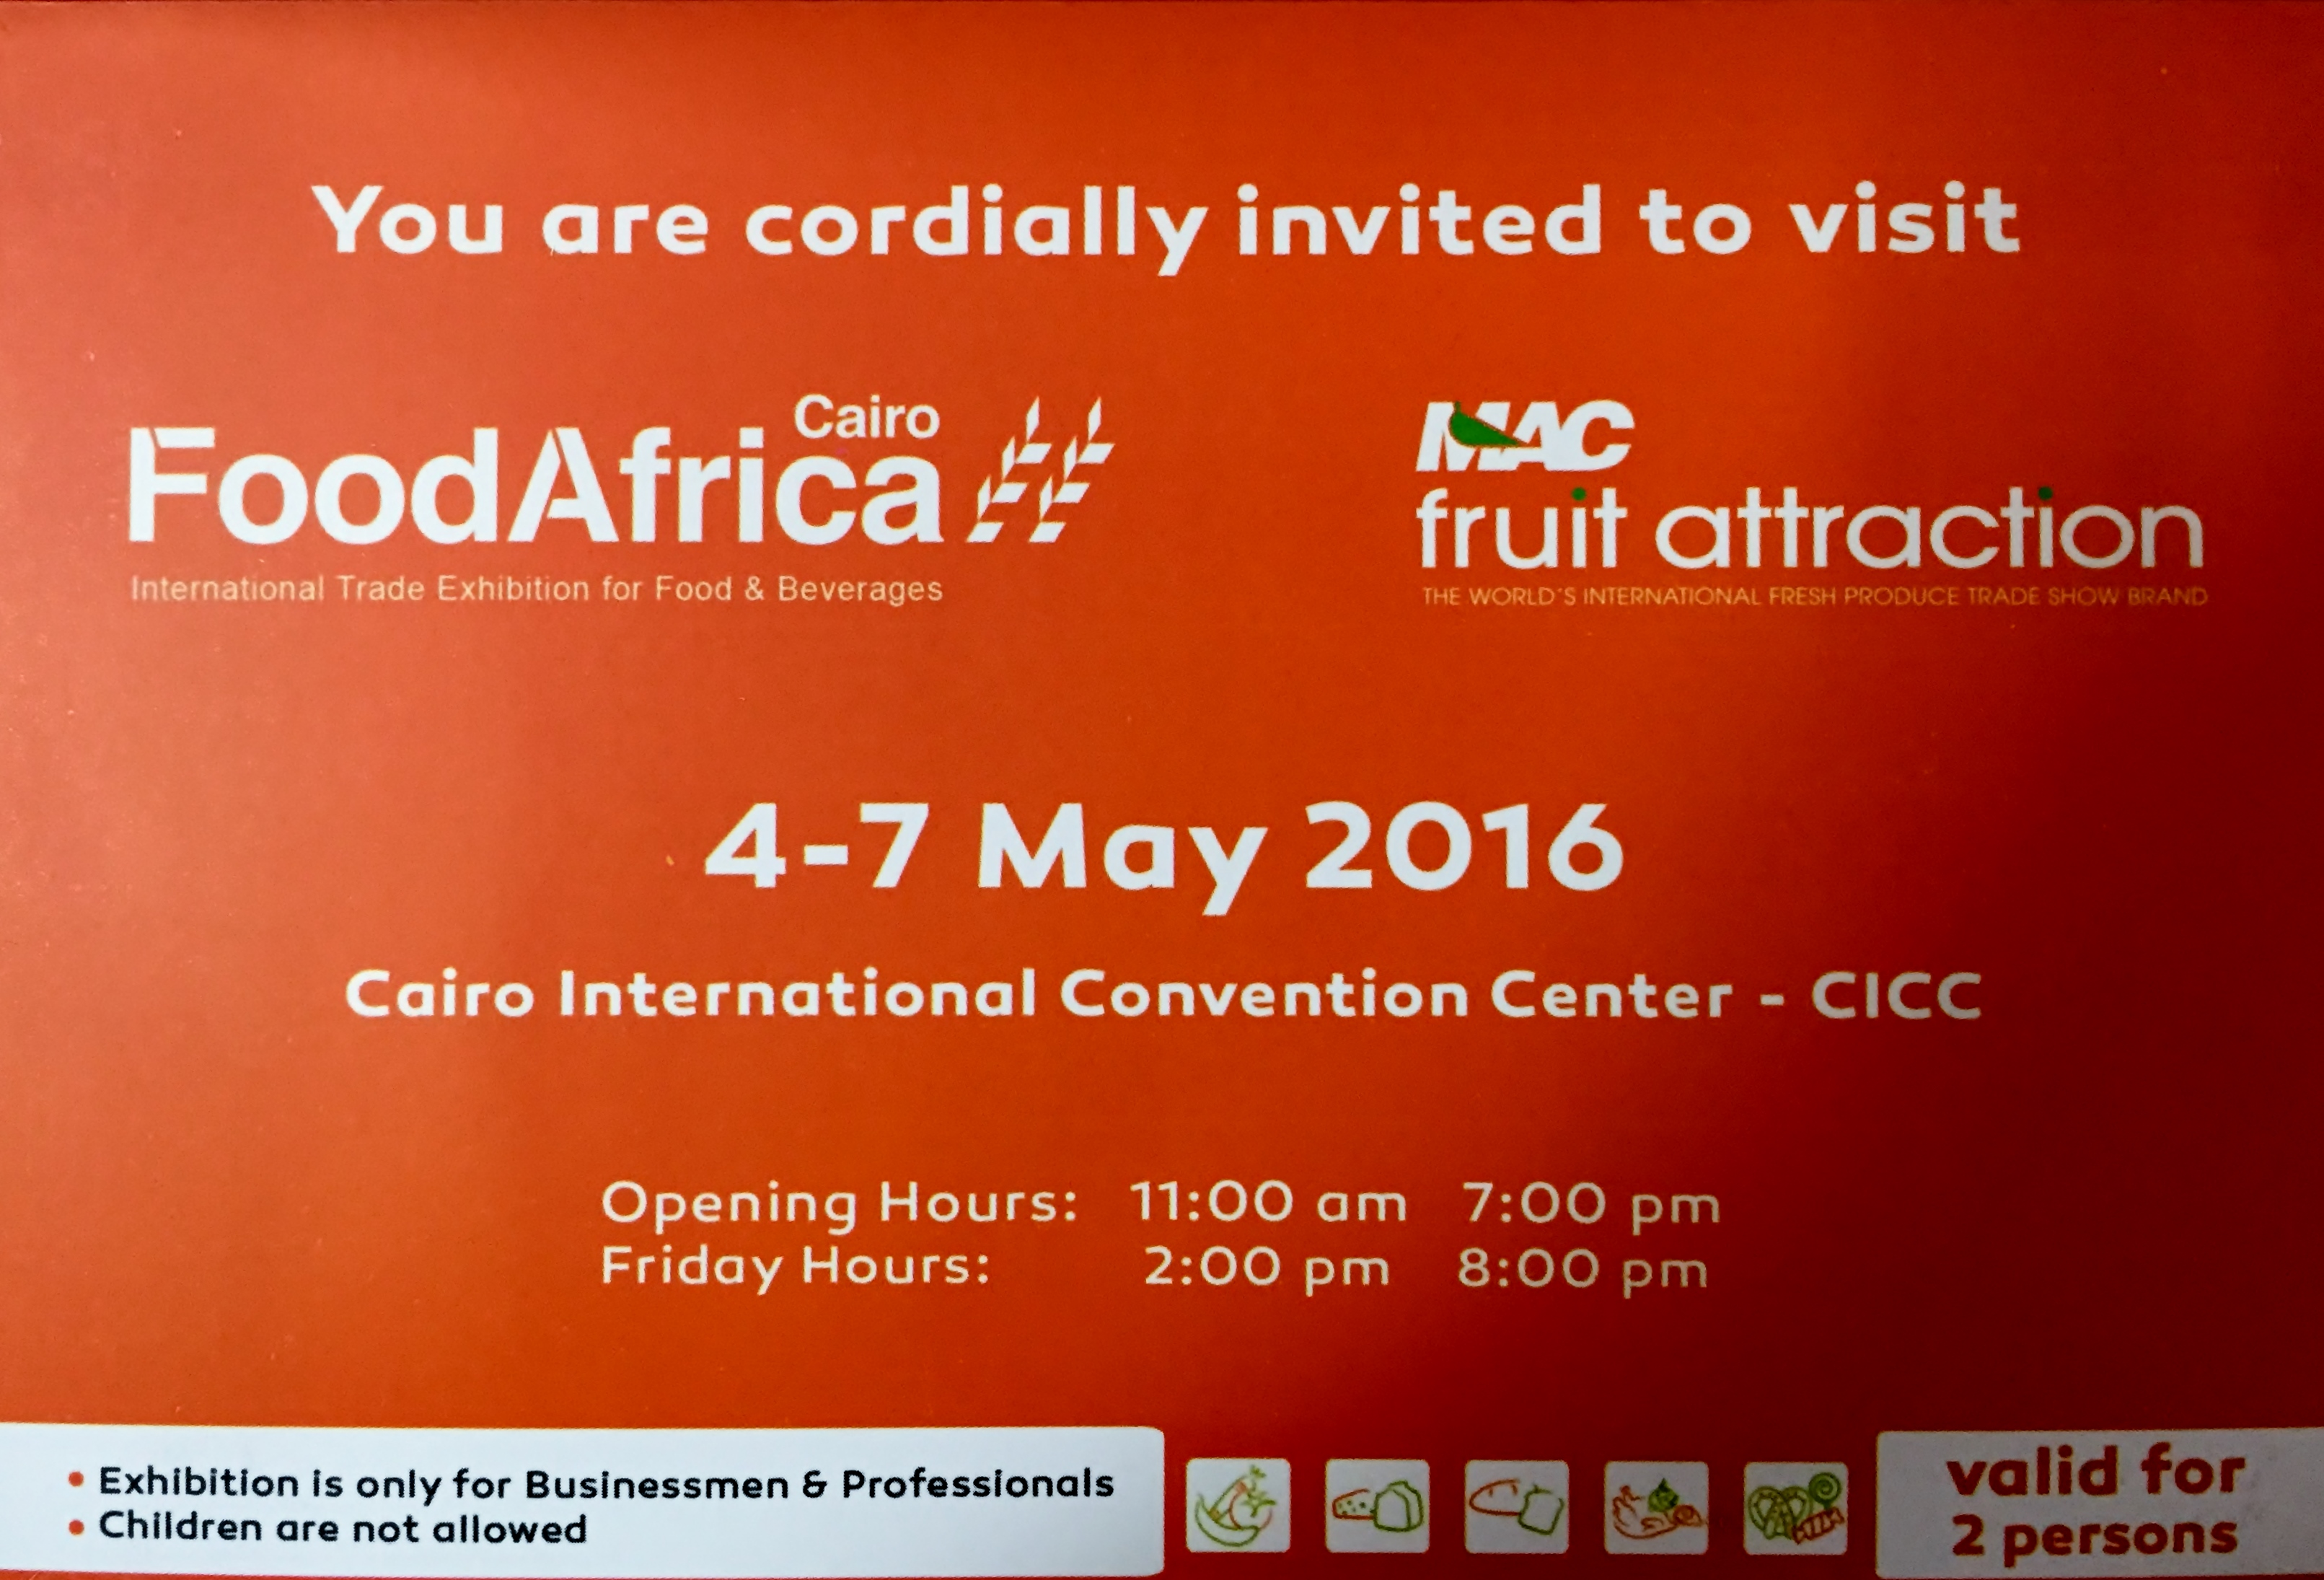 Bi technologies food africa 2016 exhibition invitation food africa 2016 exhibition invitation stopboris Choice Image